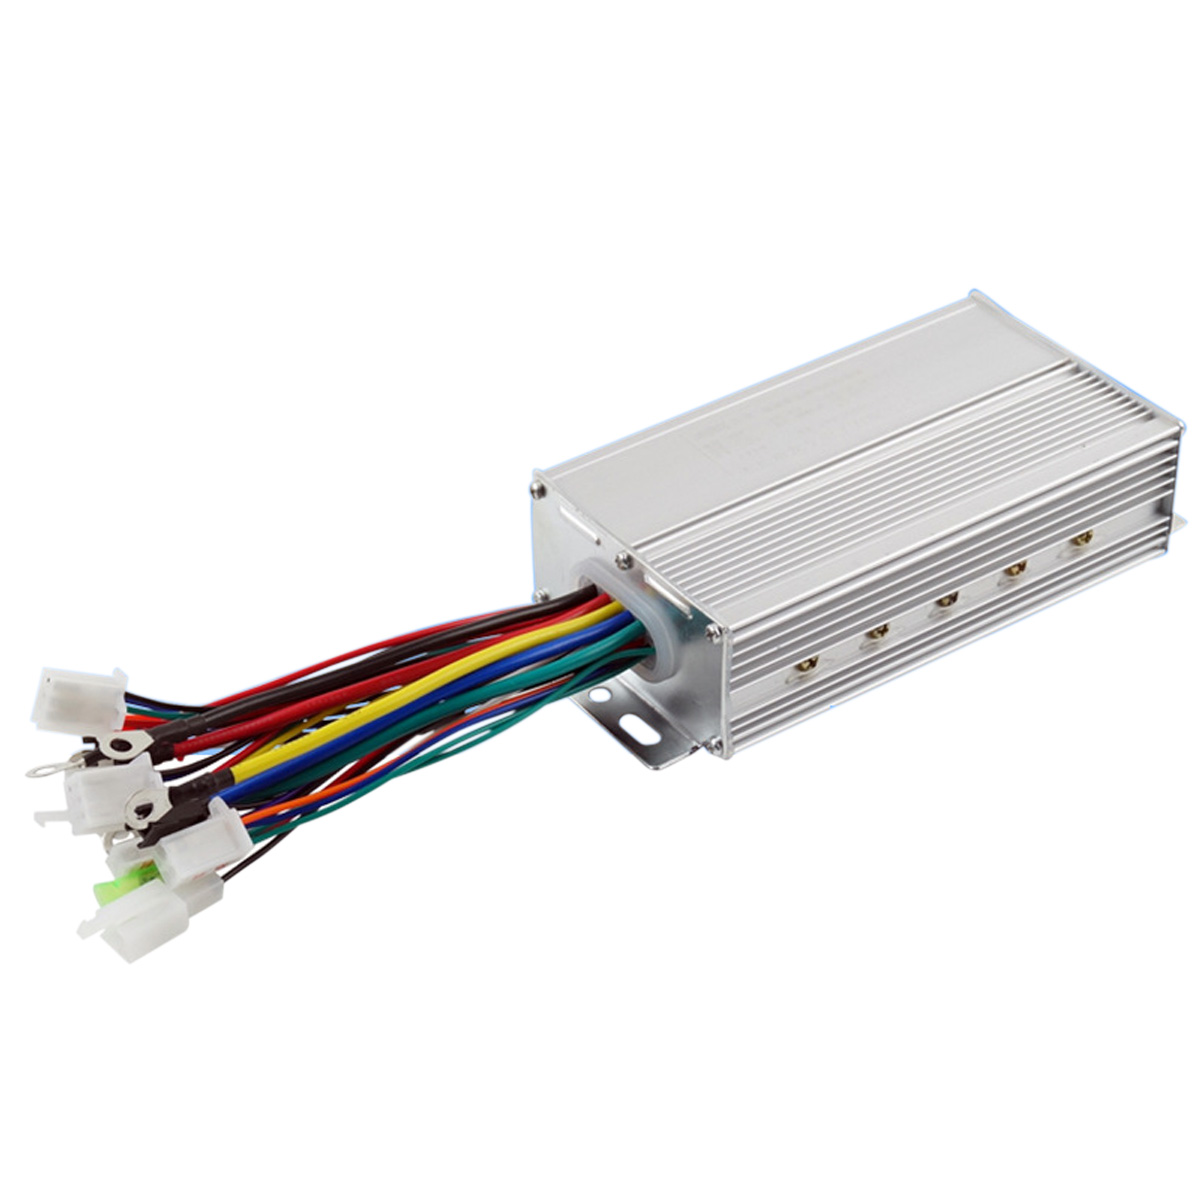 DC 48V-64V 33 A 600W Brushless DC Motor Regulator Speed Controller For Electric Bicycle E-bike Scooter